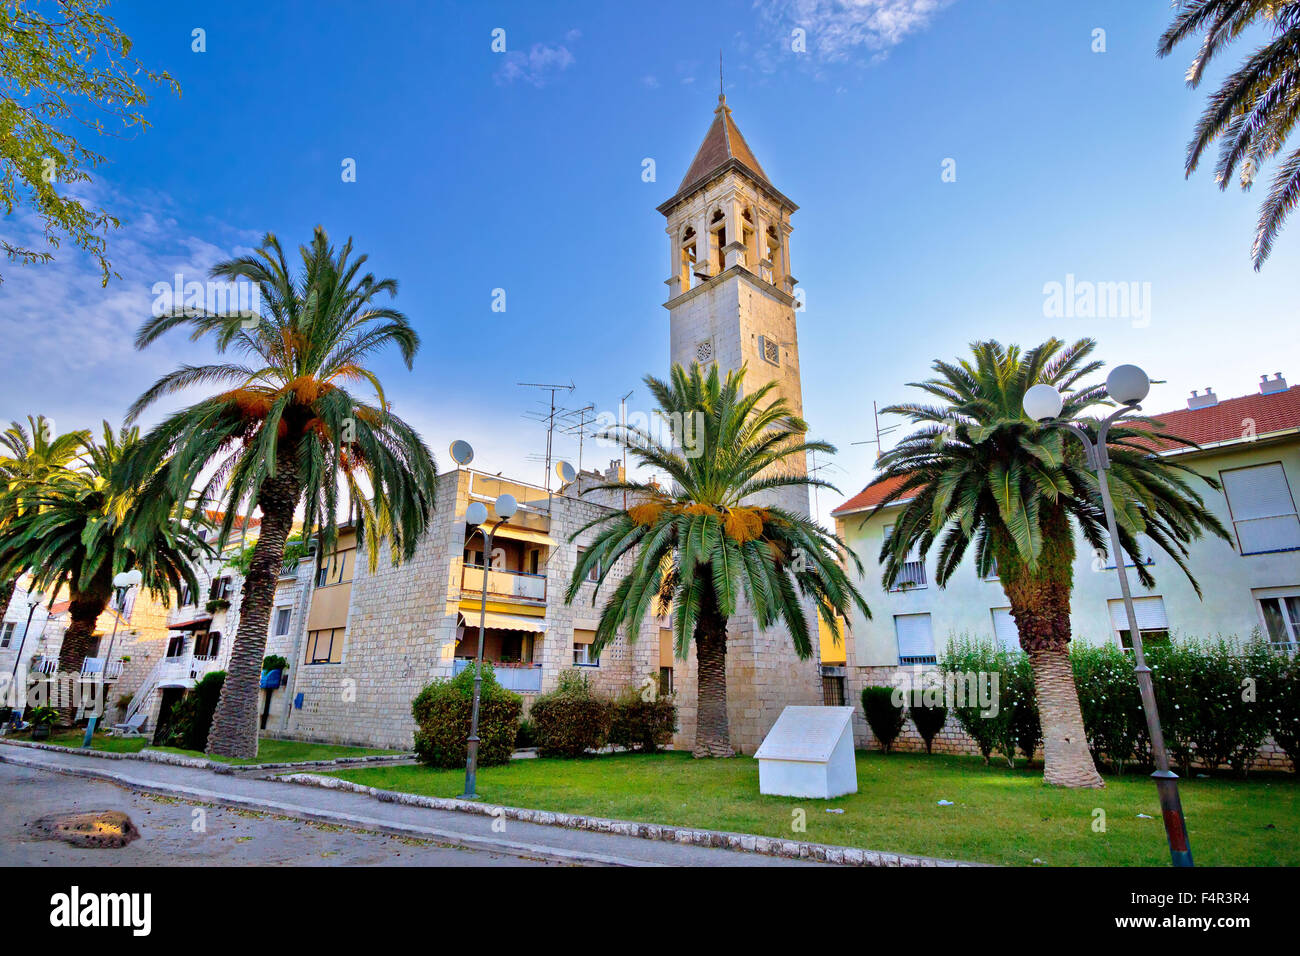 Teogir stone church and palms view, UNESCO site in Croatia - Stock Image